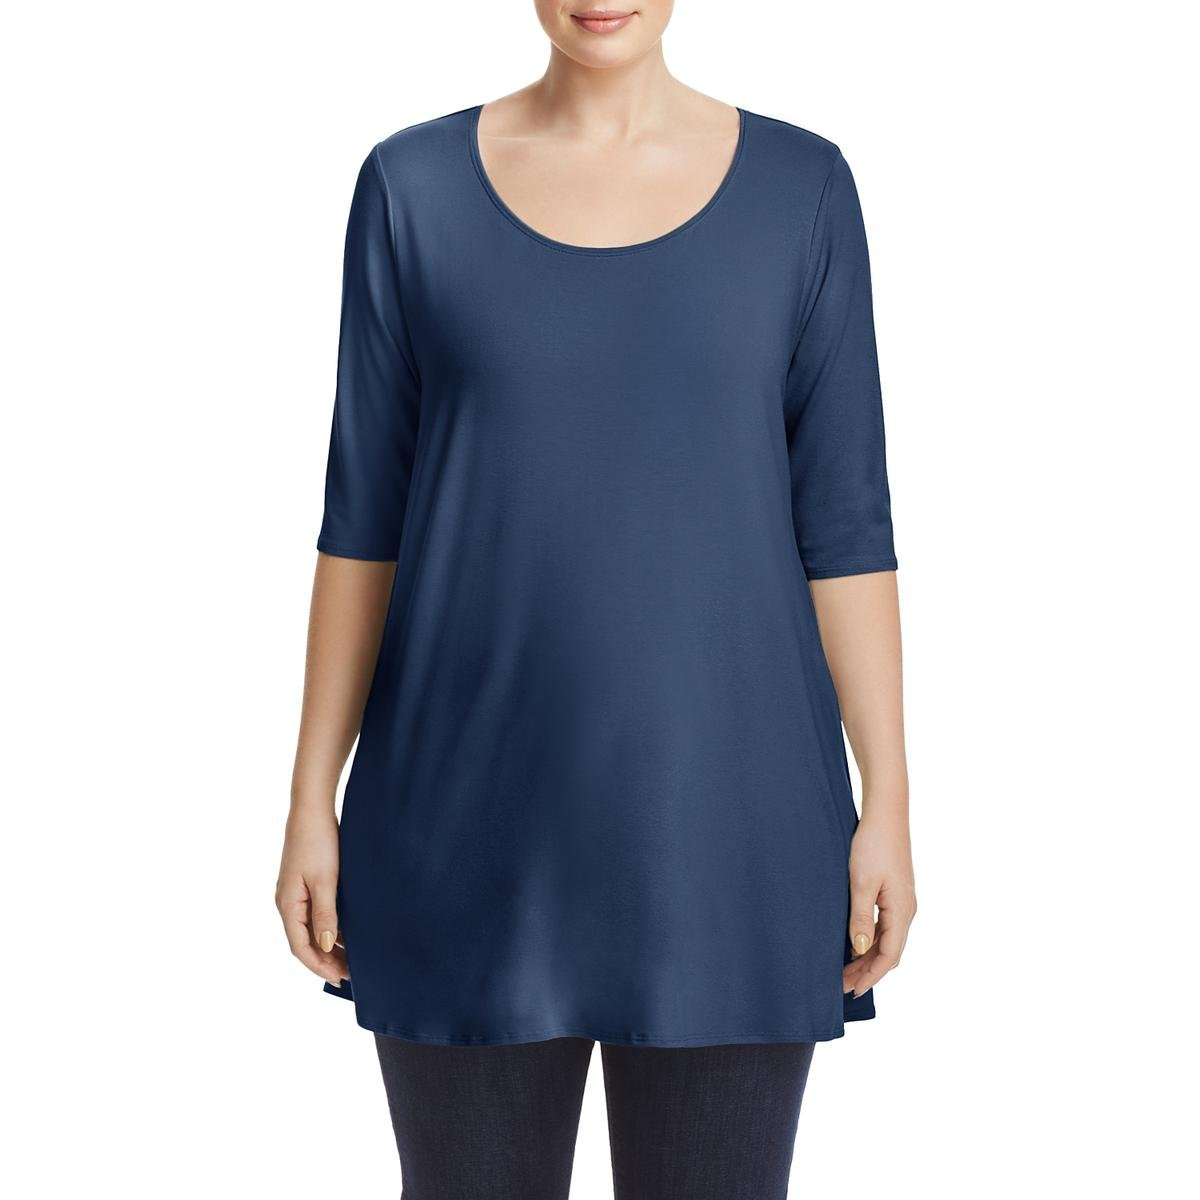 Eileen Fisher Womens Plus Elbow Sleeves Scoop Neck Tunic Top Blue 1X